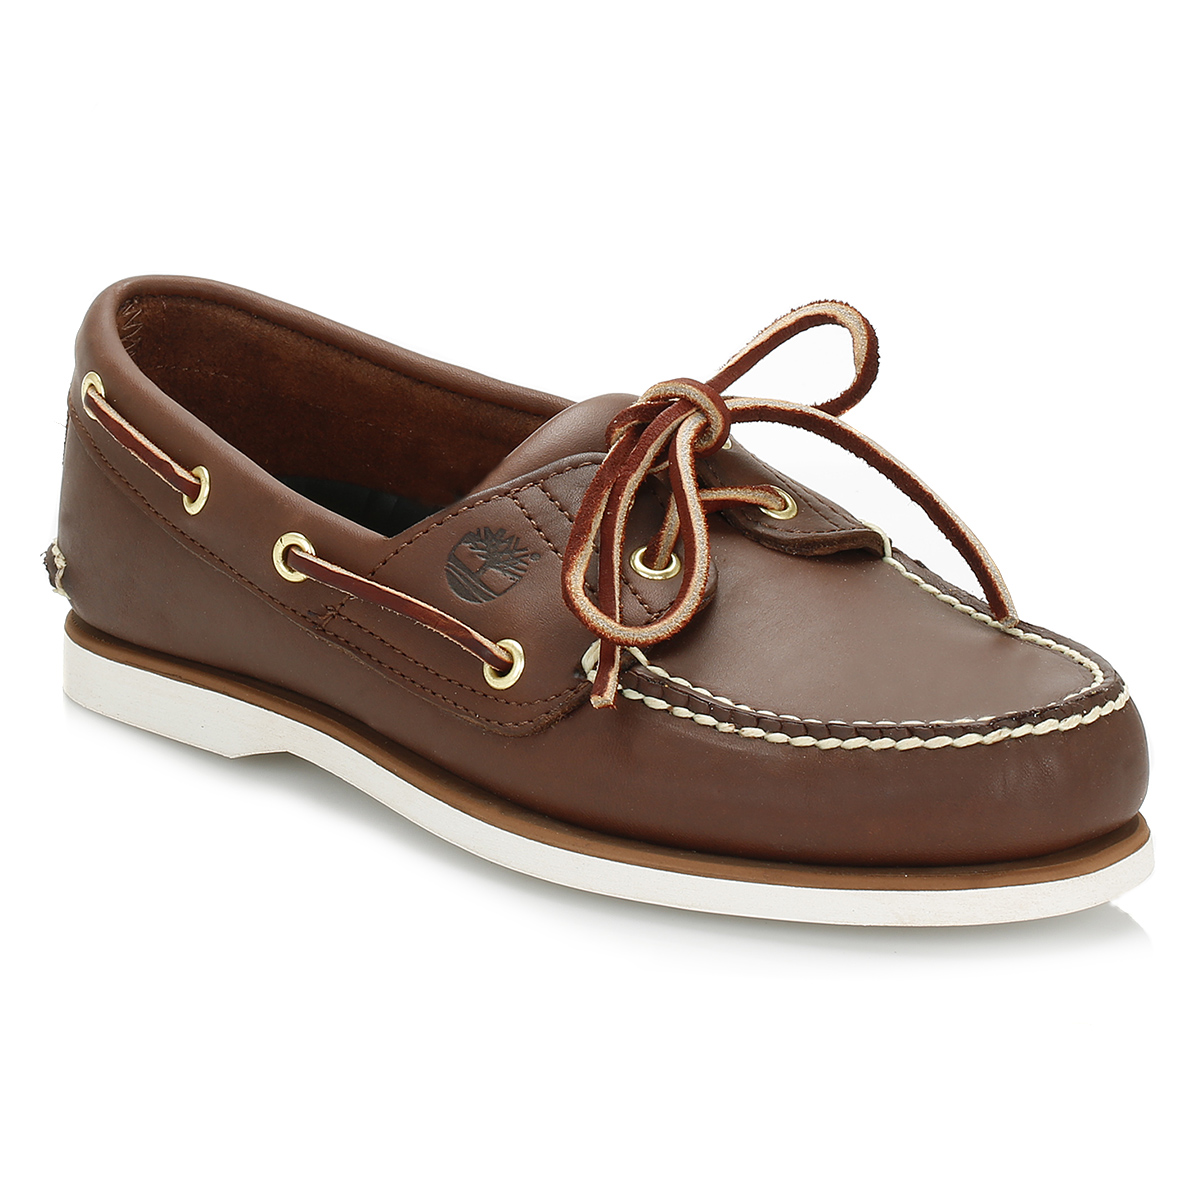 39114587 Timberland Mens Classic Boat Shoes, Navy Blue or Brown, Leather ...